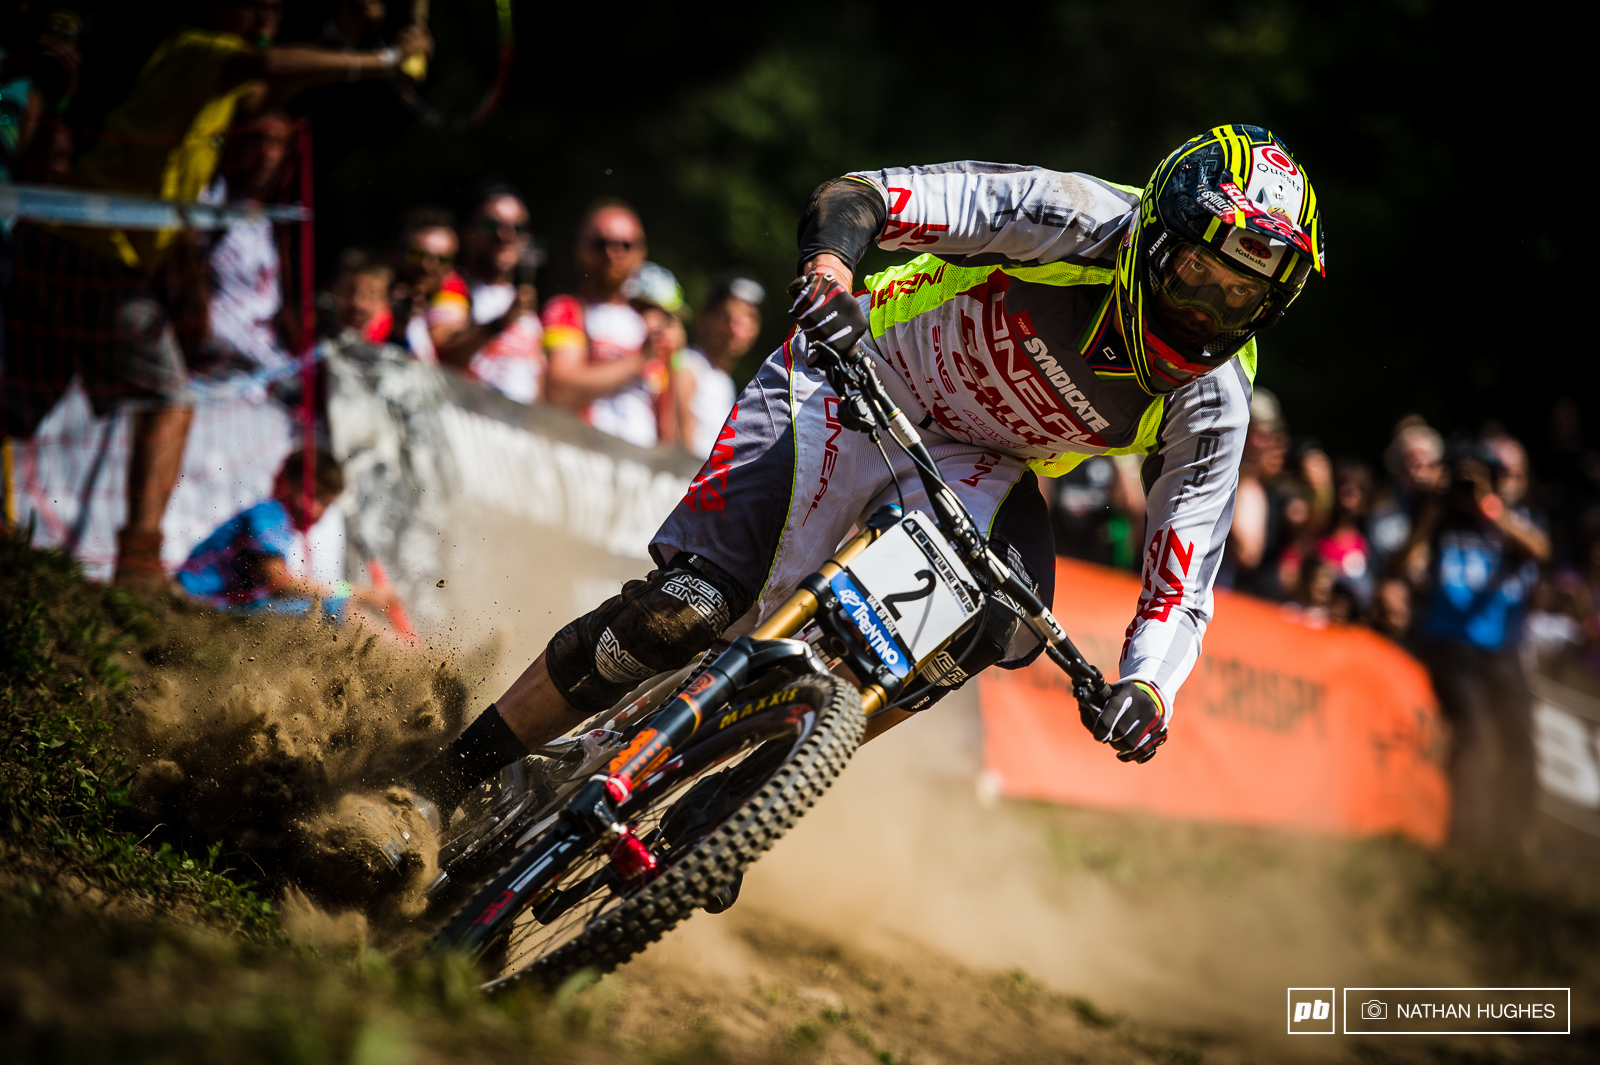 Greg Minnaar knew it would take something exceptional to catch Gwin and went all out but came unstuck in the dust pushing too hard. Still an exceptional season including two wins and coming back from a broken hand gave him 4th spot in the overall.